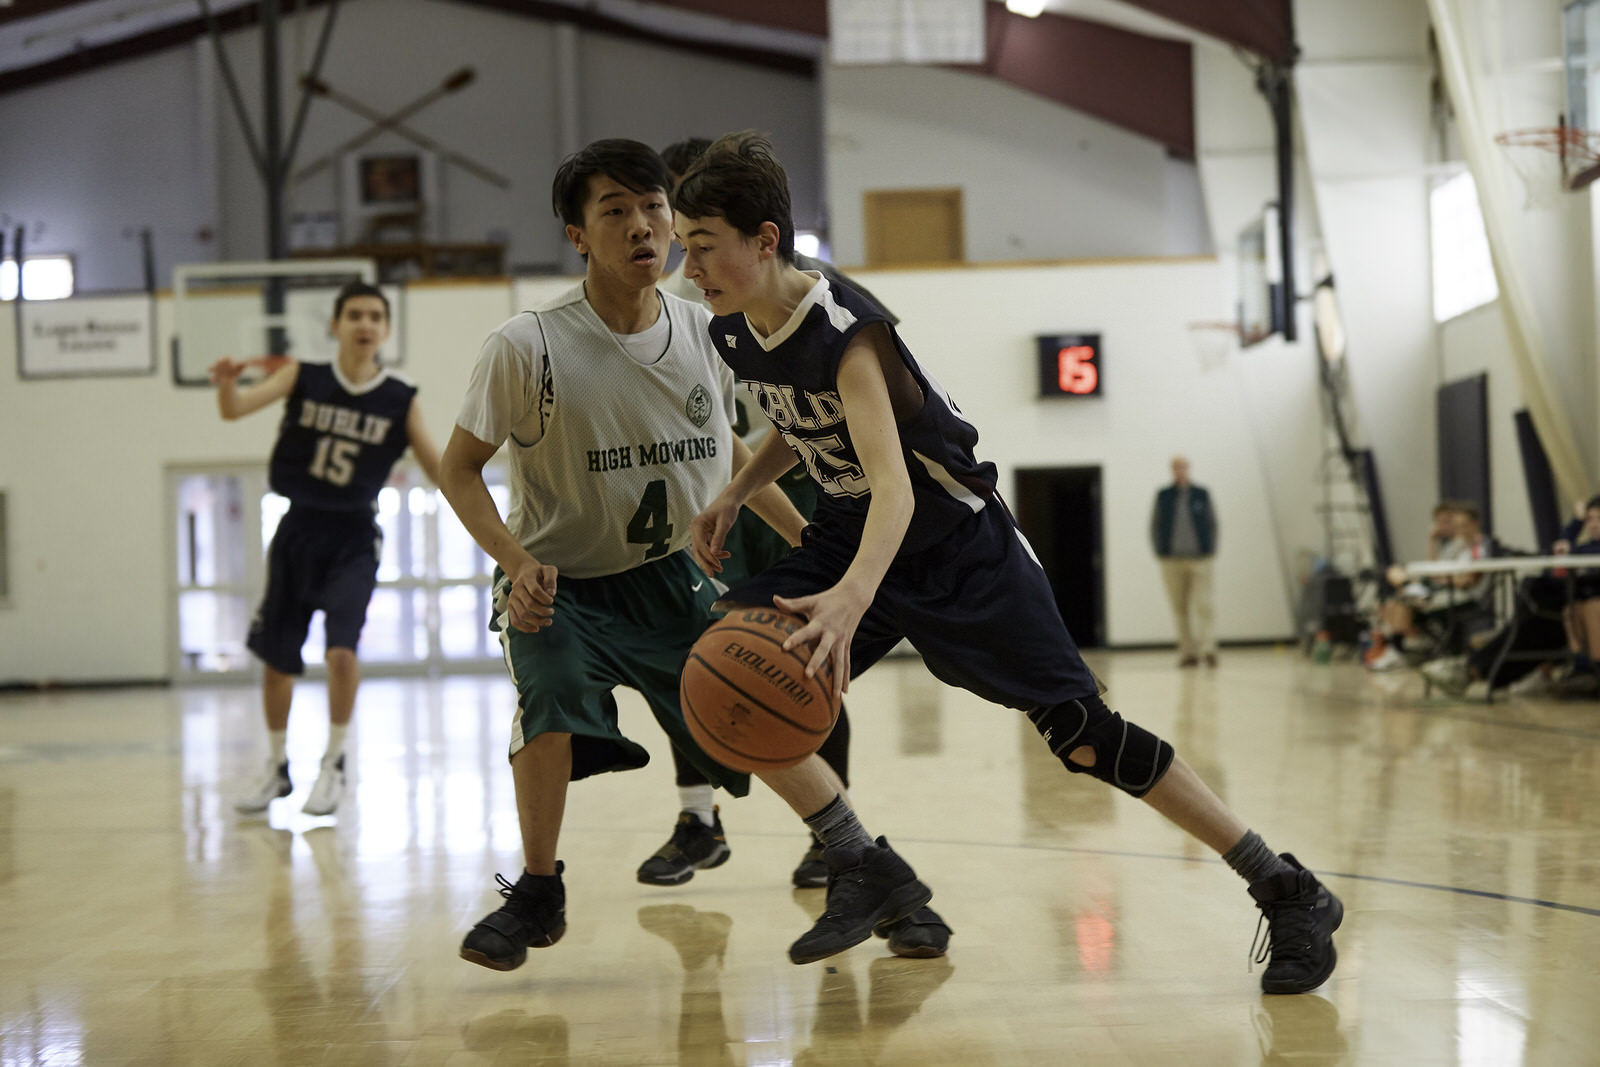 Dublin JV Boys Basketball vs High Mowing School - Jan 26 2019 - 0189.jpg